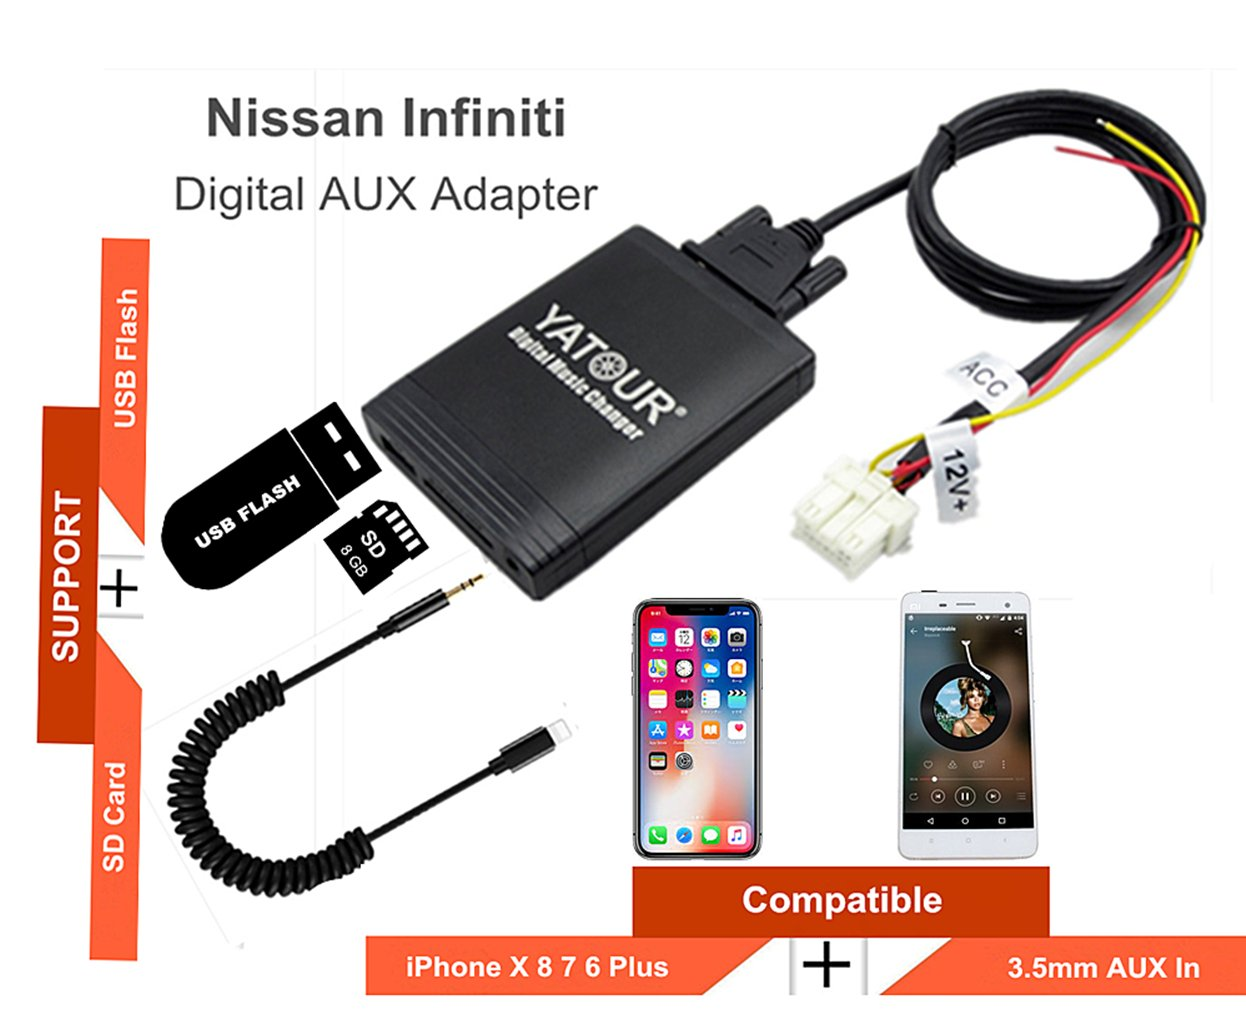 Nissan Infiniti Stereo AUX Adapter, Digital Car Audio Input Interface with SD Card, MP3 USB, 3.5mm AUX in, Music Player for Nissan Infiniti 1995-2011 (M06-NIS)